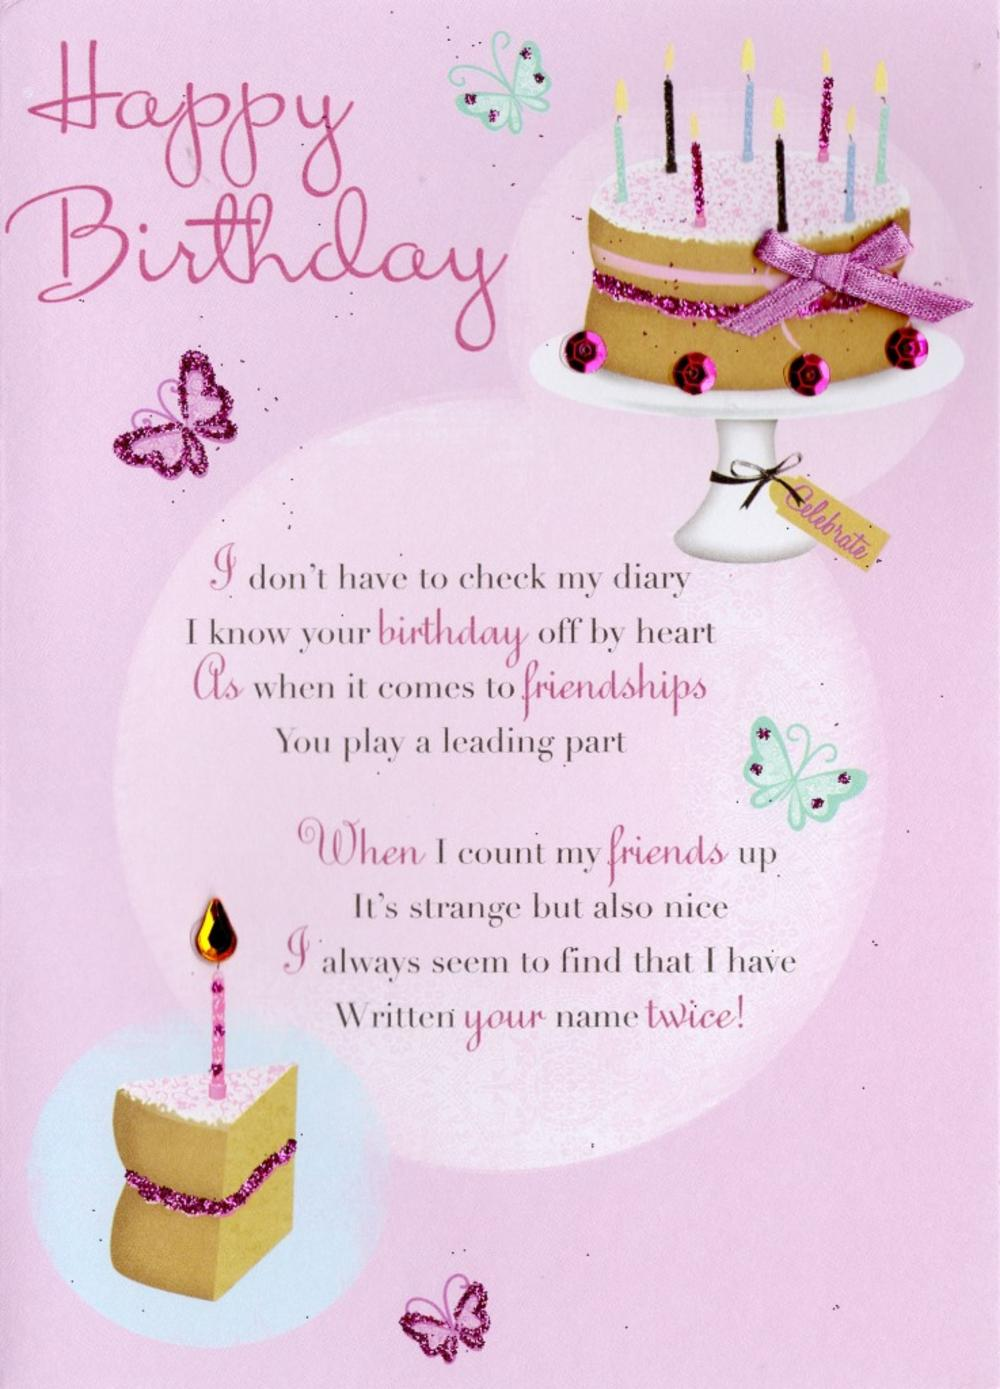 Friend happy birthday greeting card cards love kates friend happy birthday greeting card bookmarktalkfo Gallery